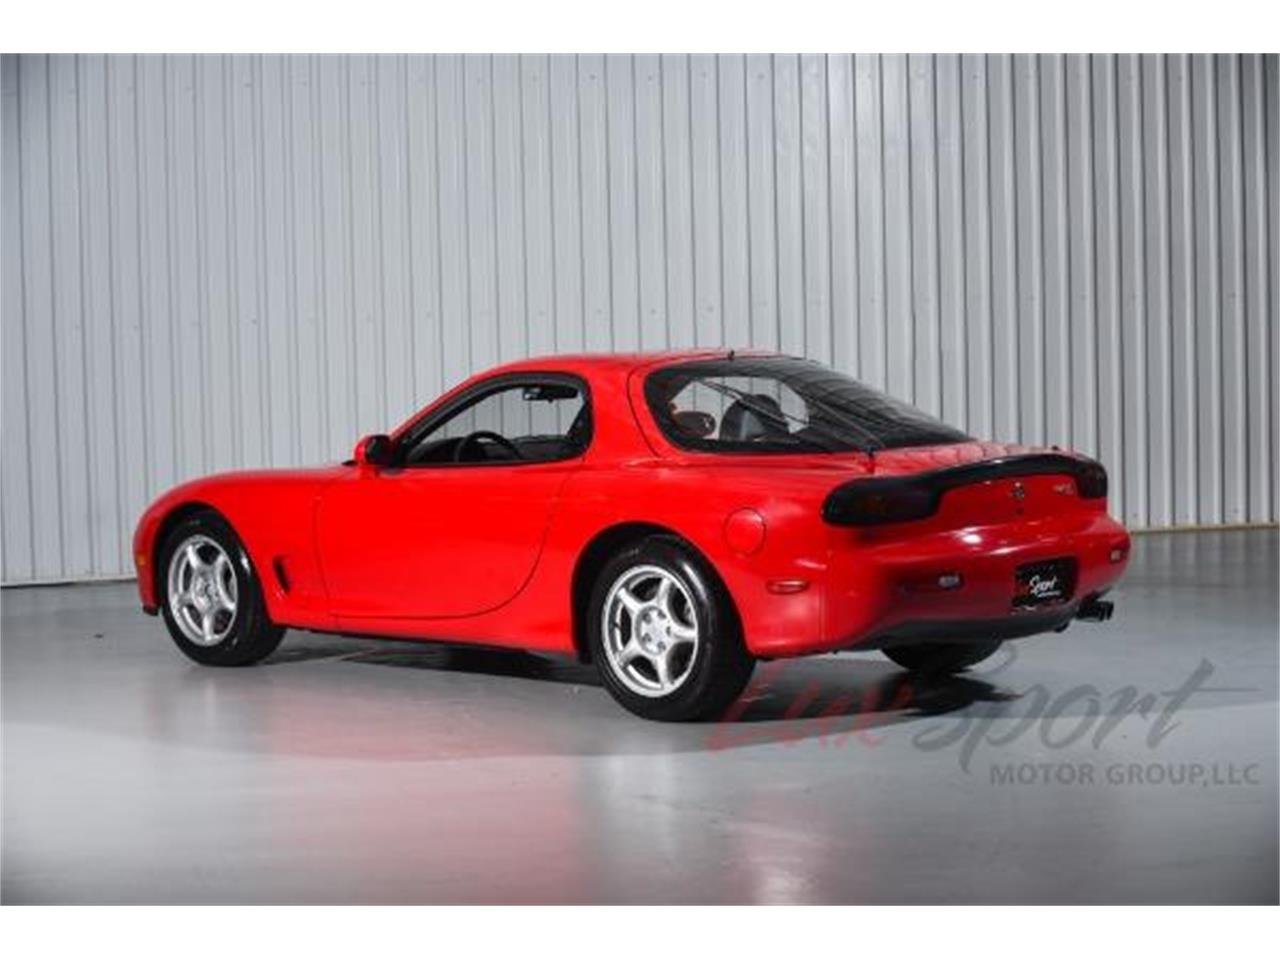 Large Picture of '93 RX-7 - $34,995.00 Offered by LuxSport Motor Group, LLC - MO02